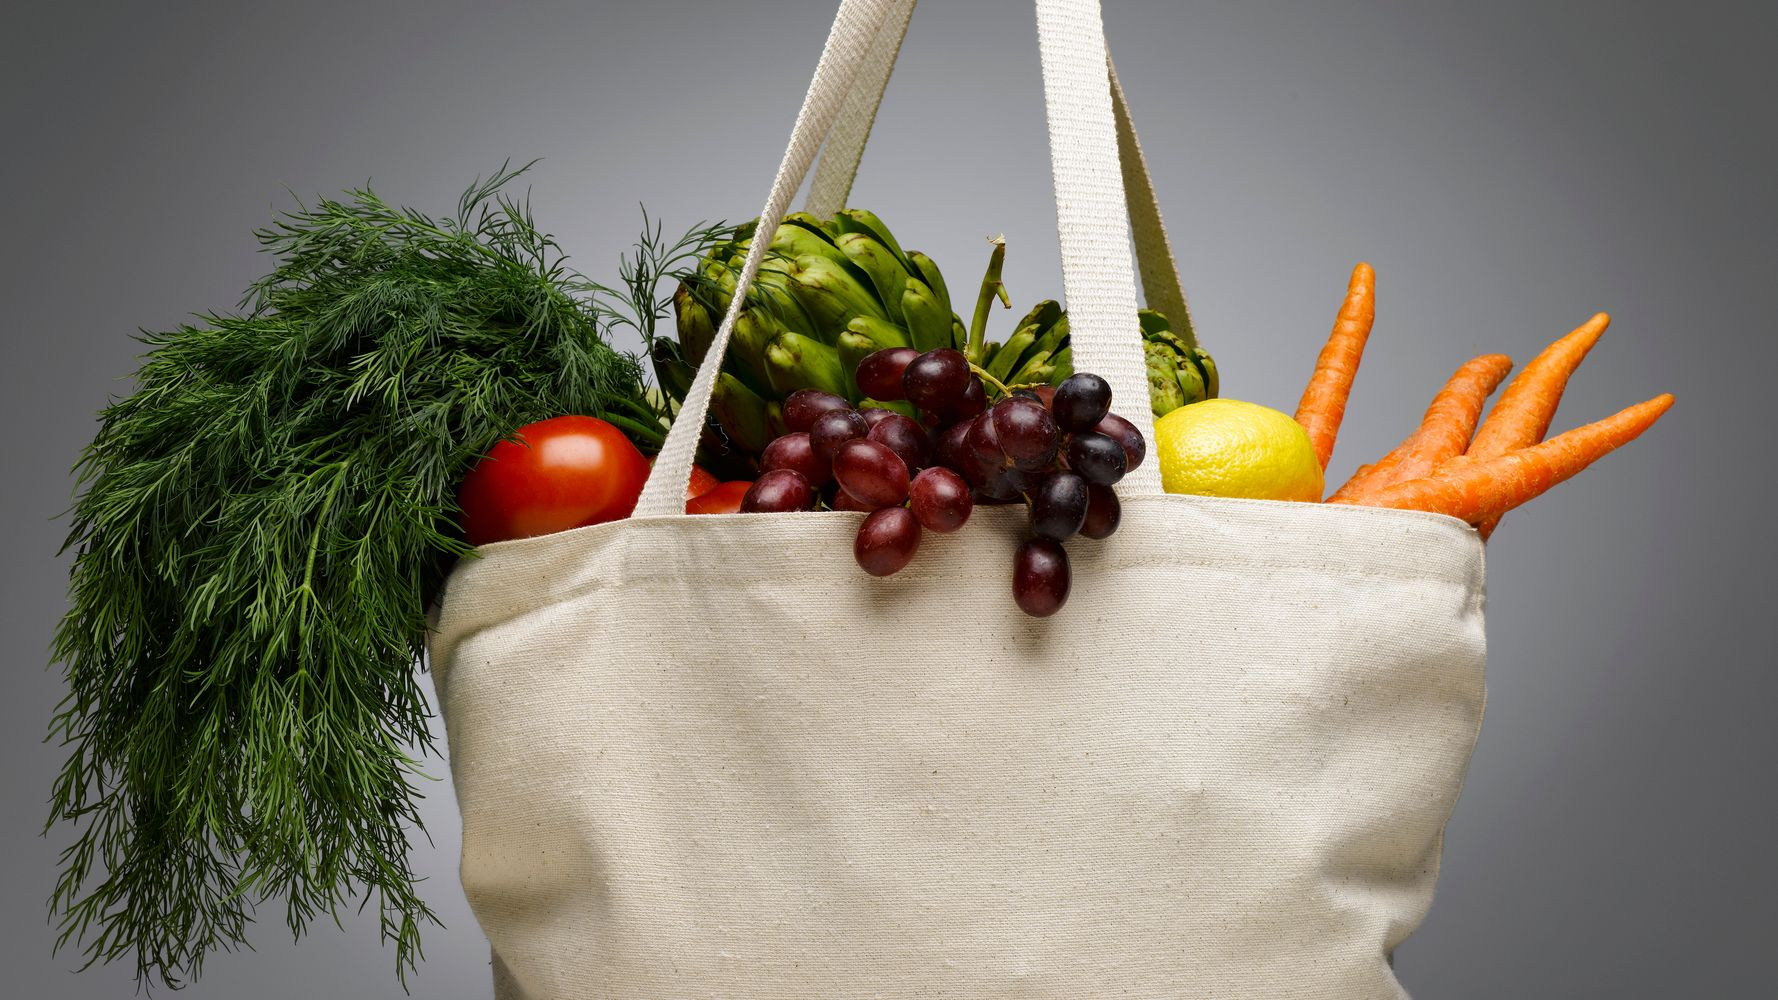 Are Reusable Grocery Bags Safe During The Coronavirus Outbreak?